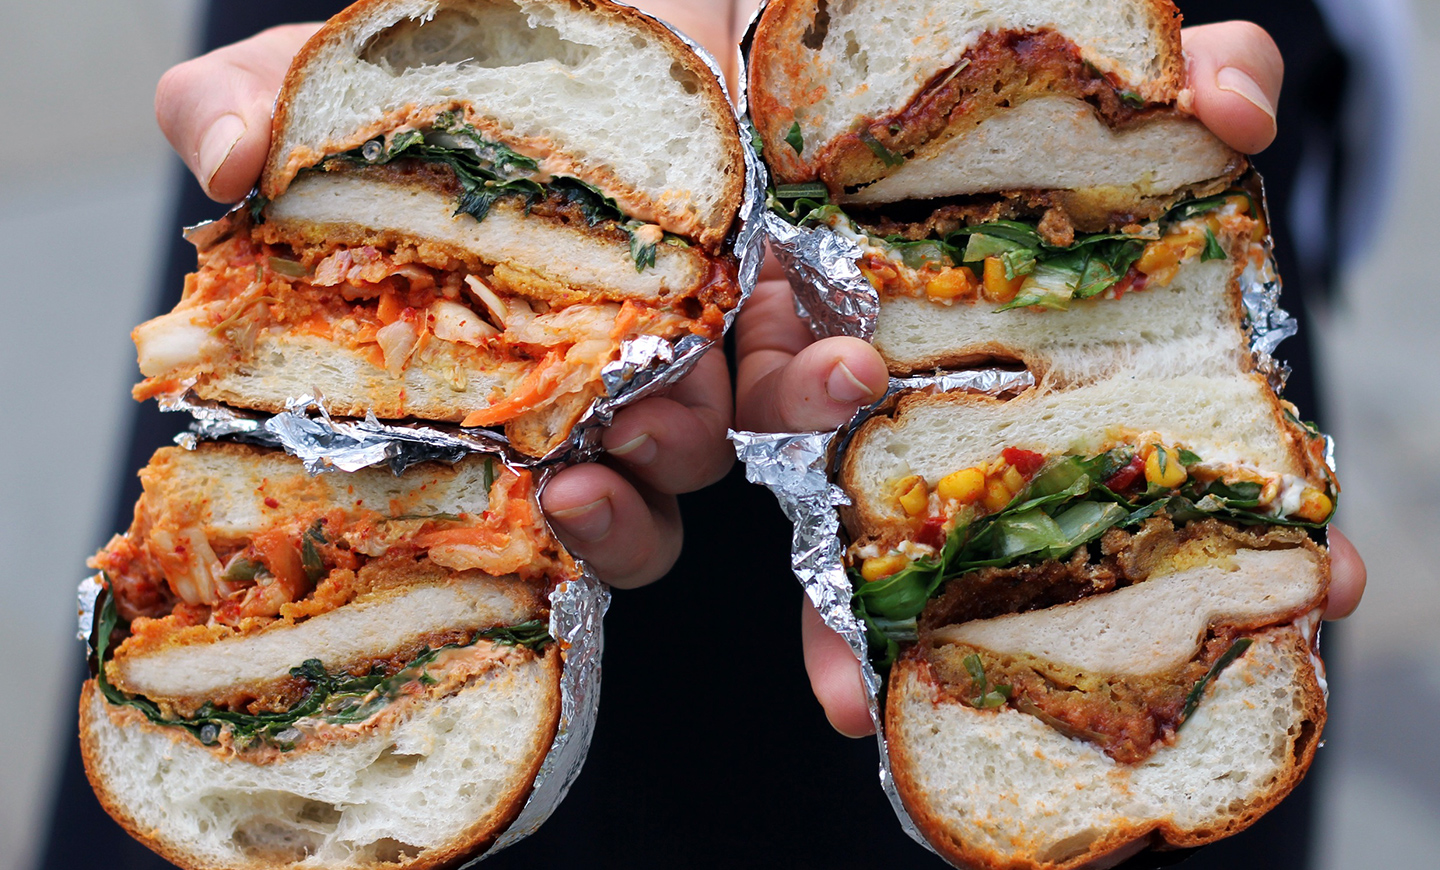 Photograph of two delicious vegan chick'n burgers sliced open showing their ingredients and held in two hands, for the vegan dark kitchen Molly Loves Chick'n.